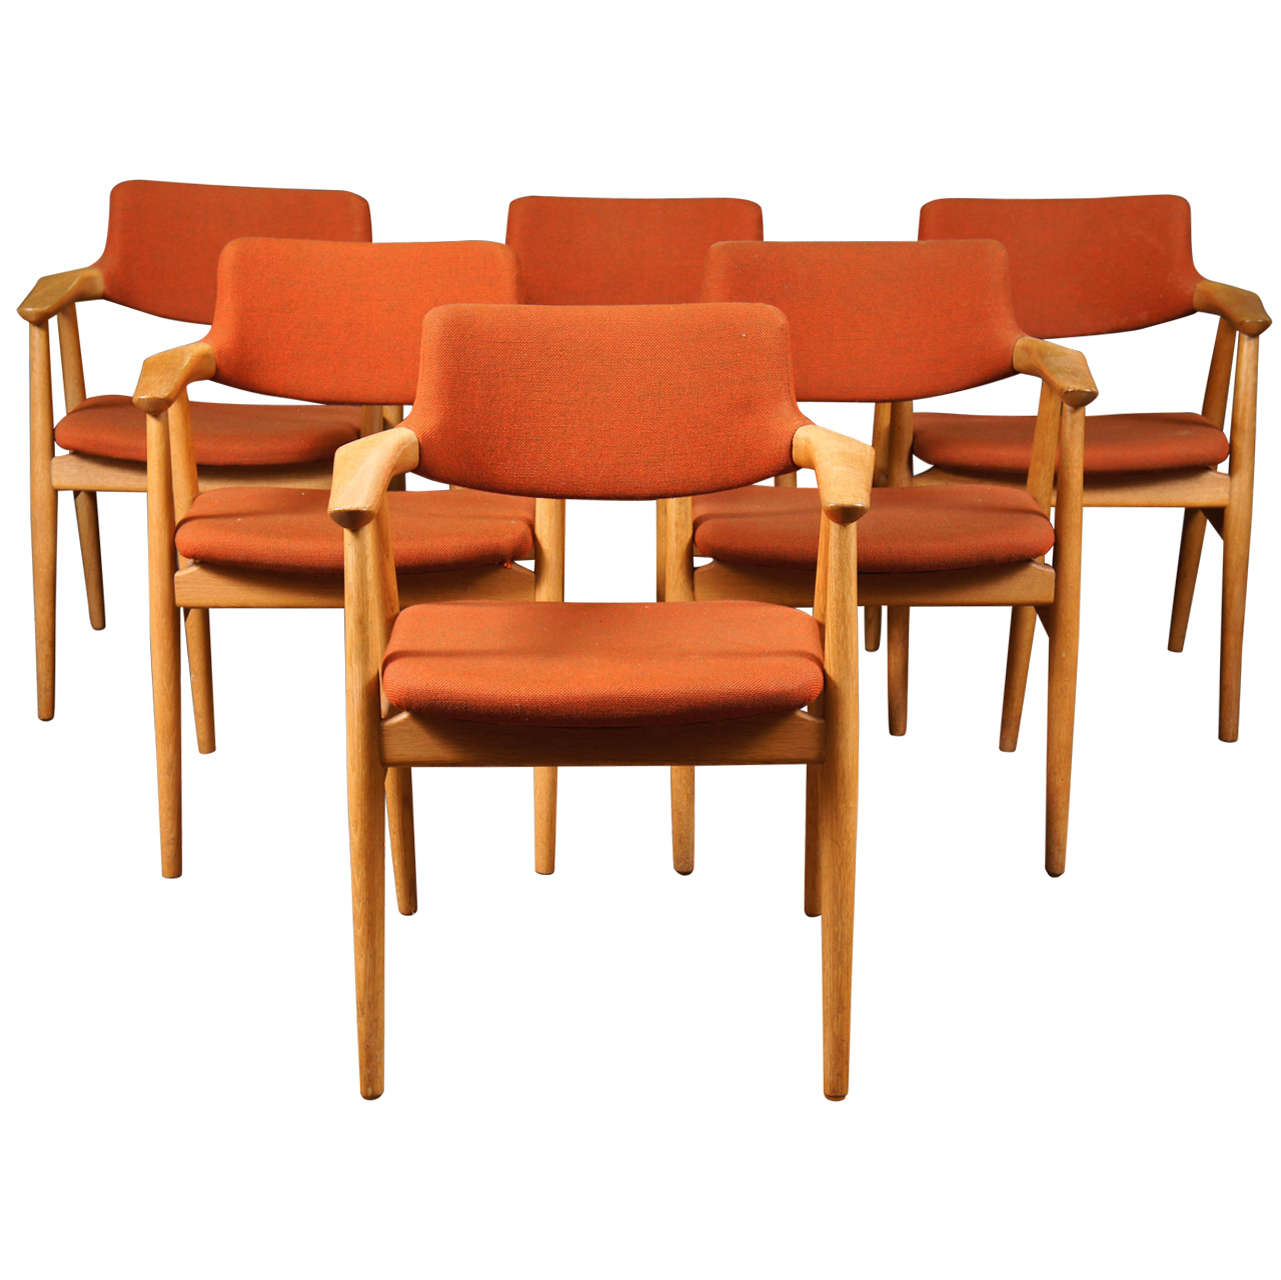 this six danish modern dining chairs by erik kirkegaard is no longer